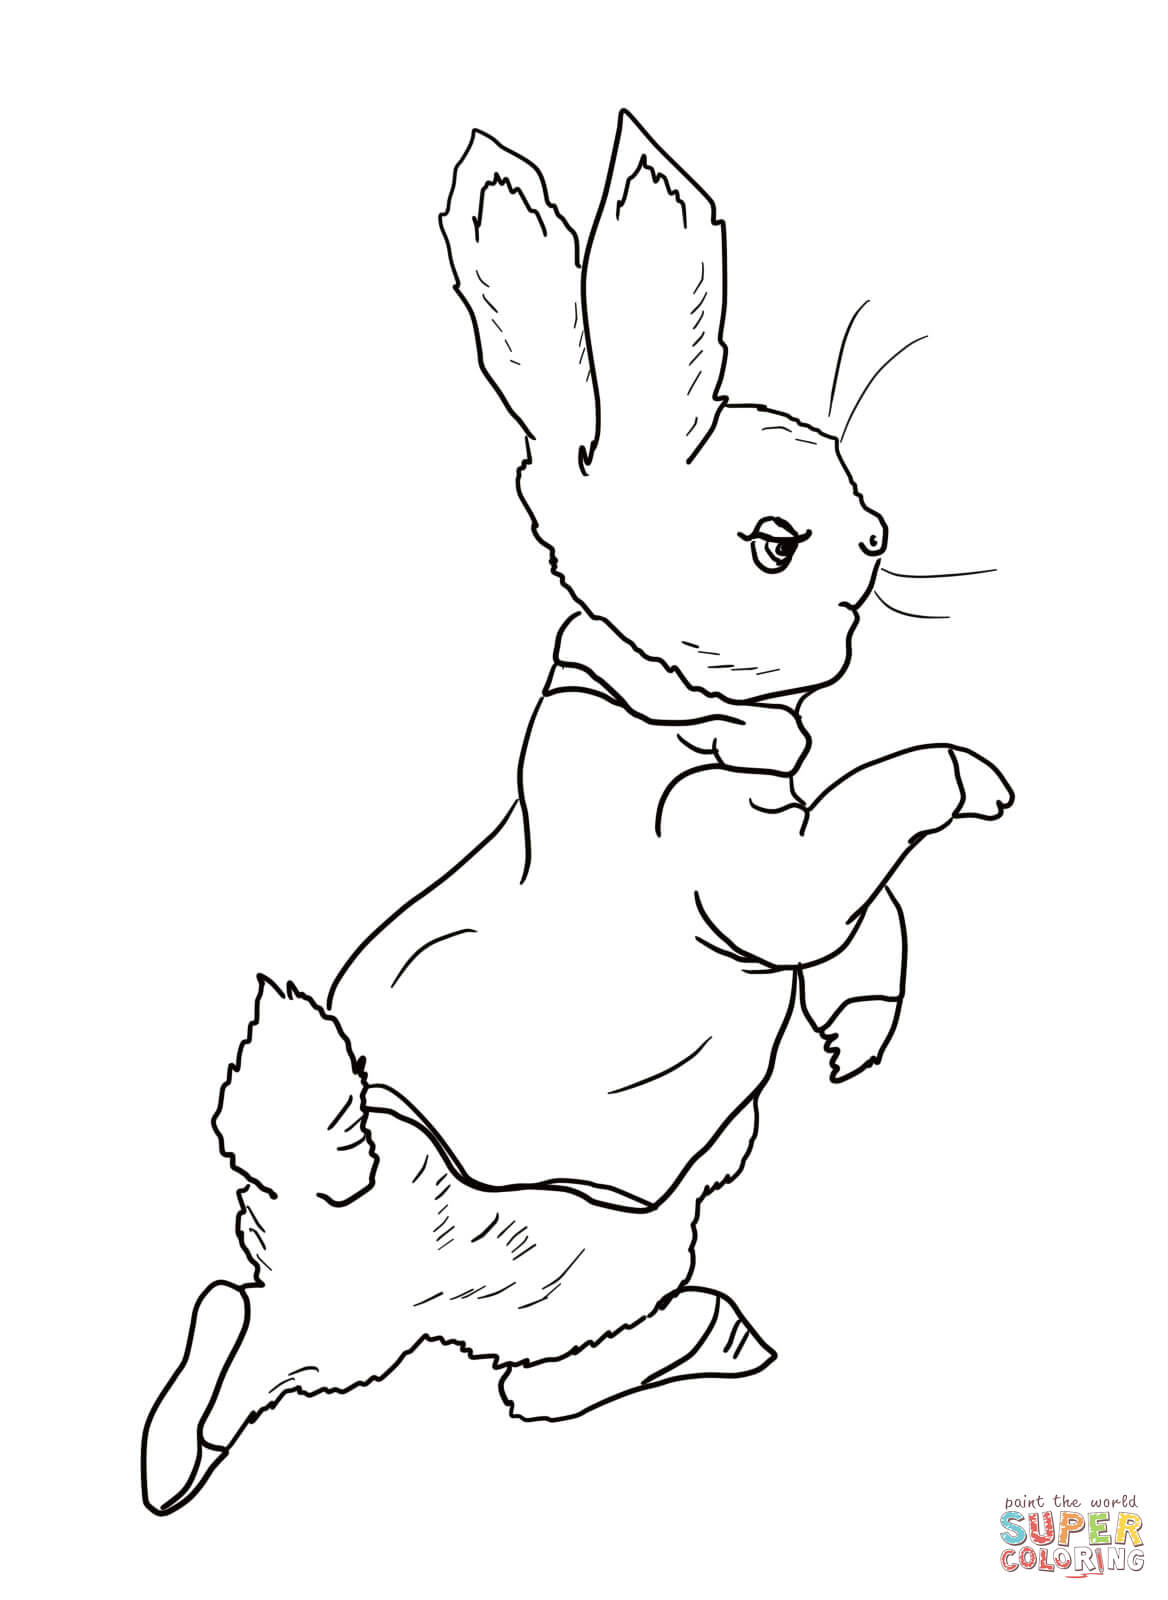 Peter rabbit coloring pages to download and print for free for Rabbit coloring pages